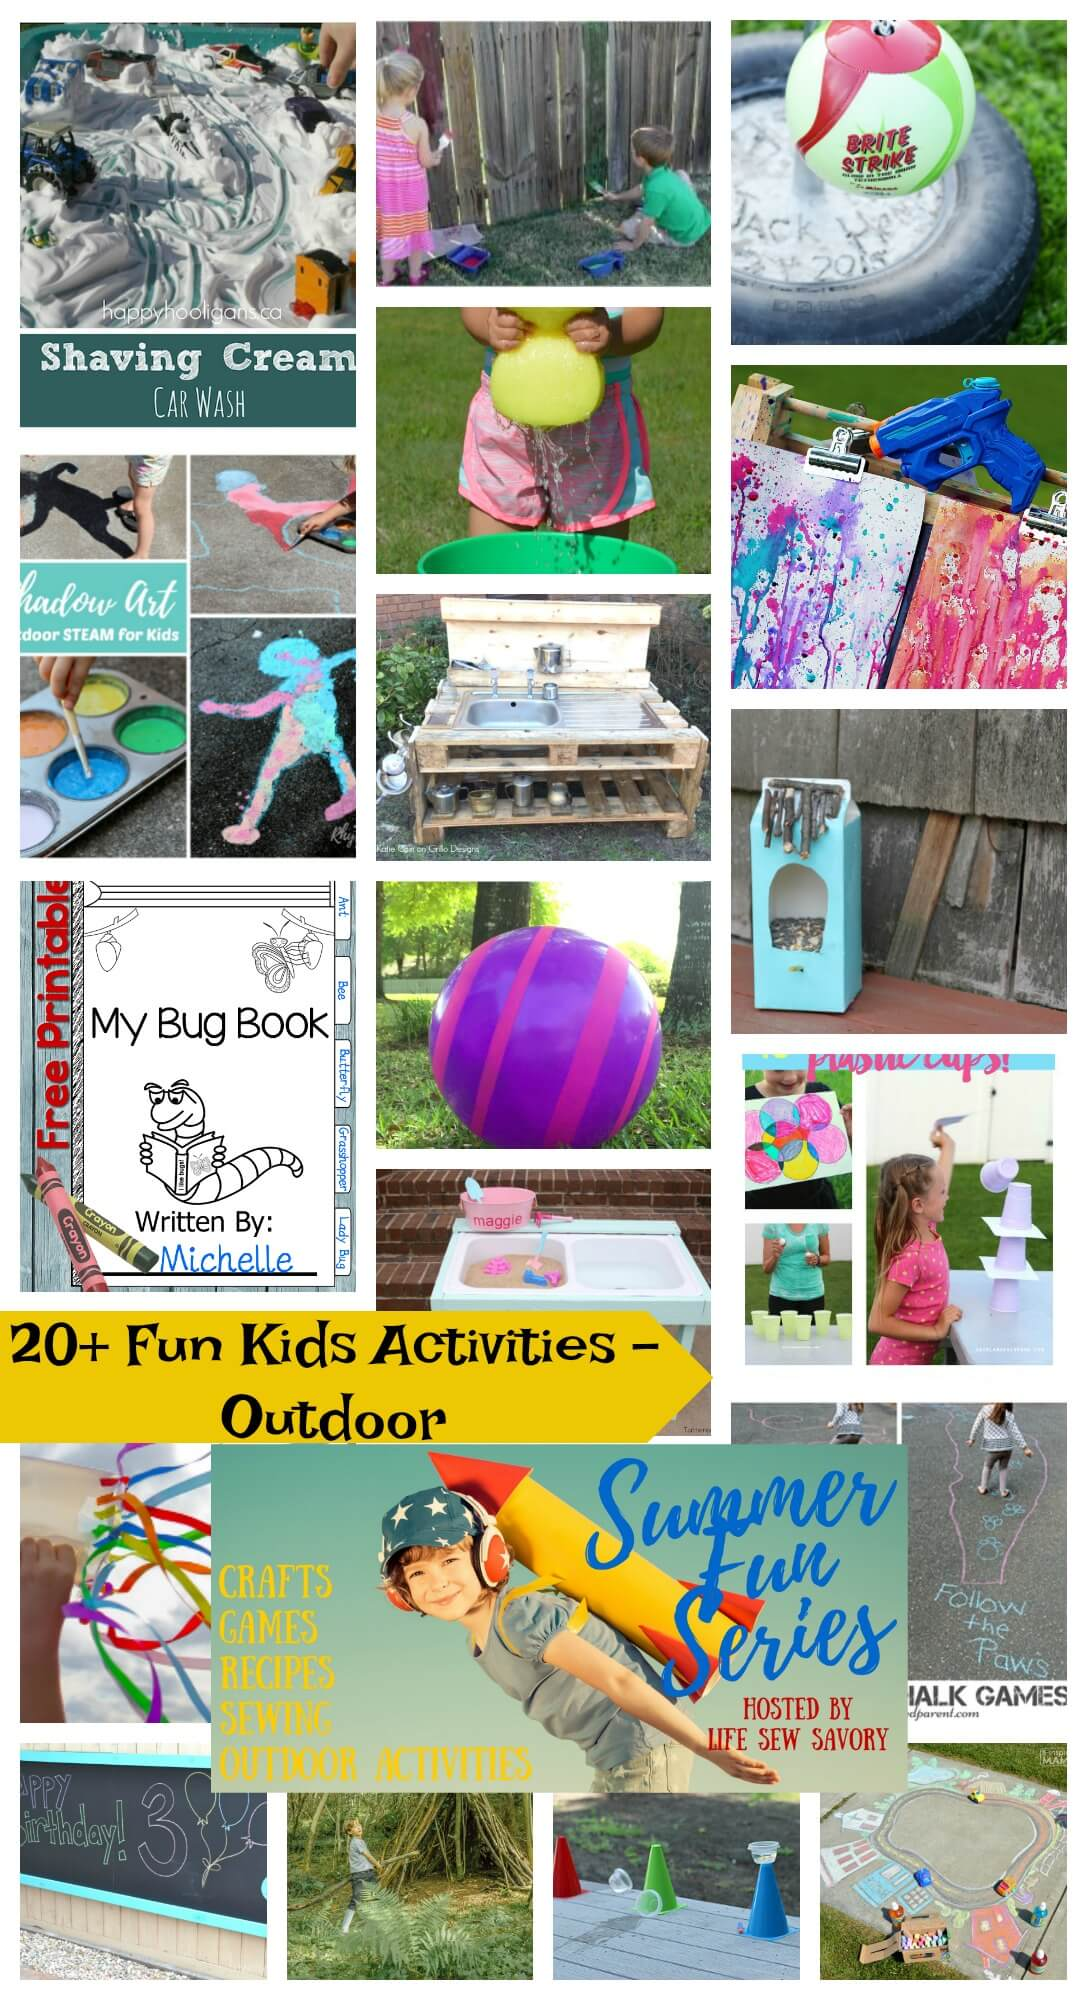 Fun Activities for kids Outdoors fun from Life Sew Savory Summer Fun Series